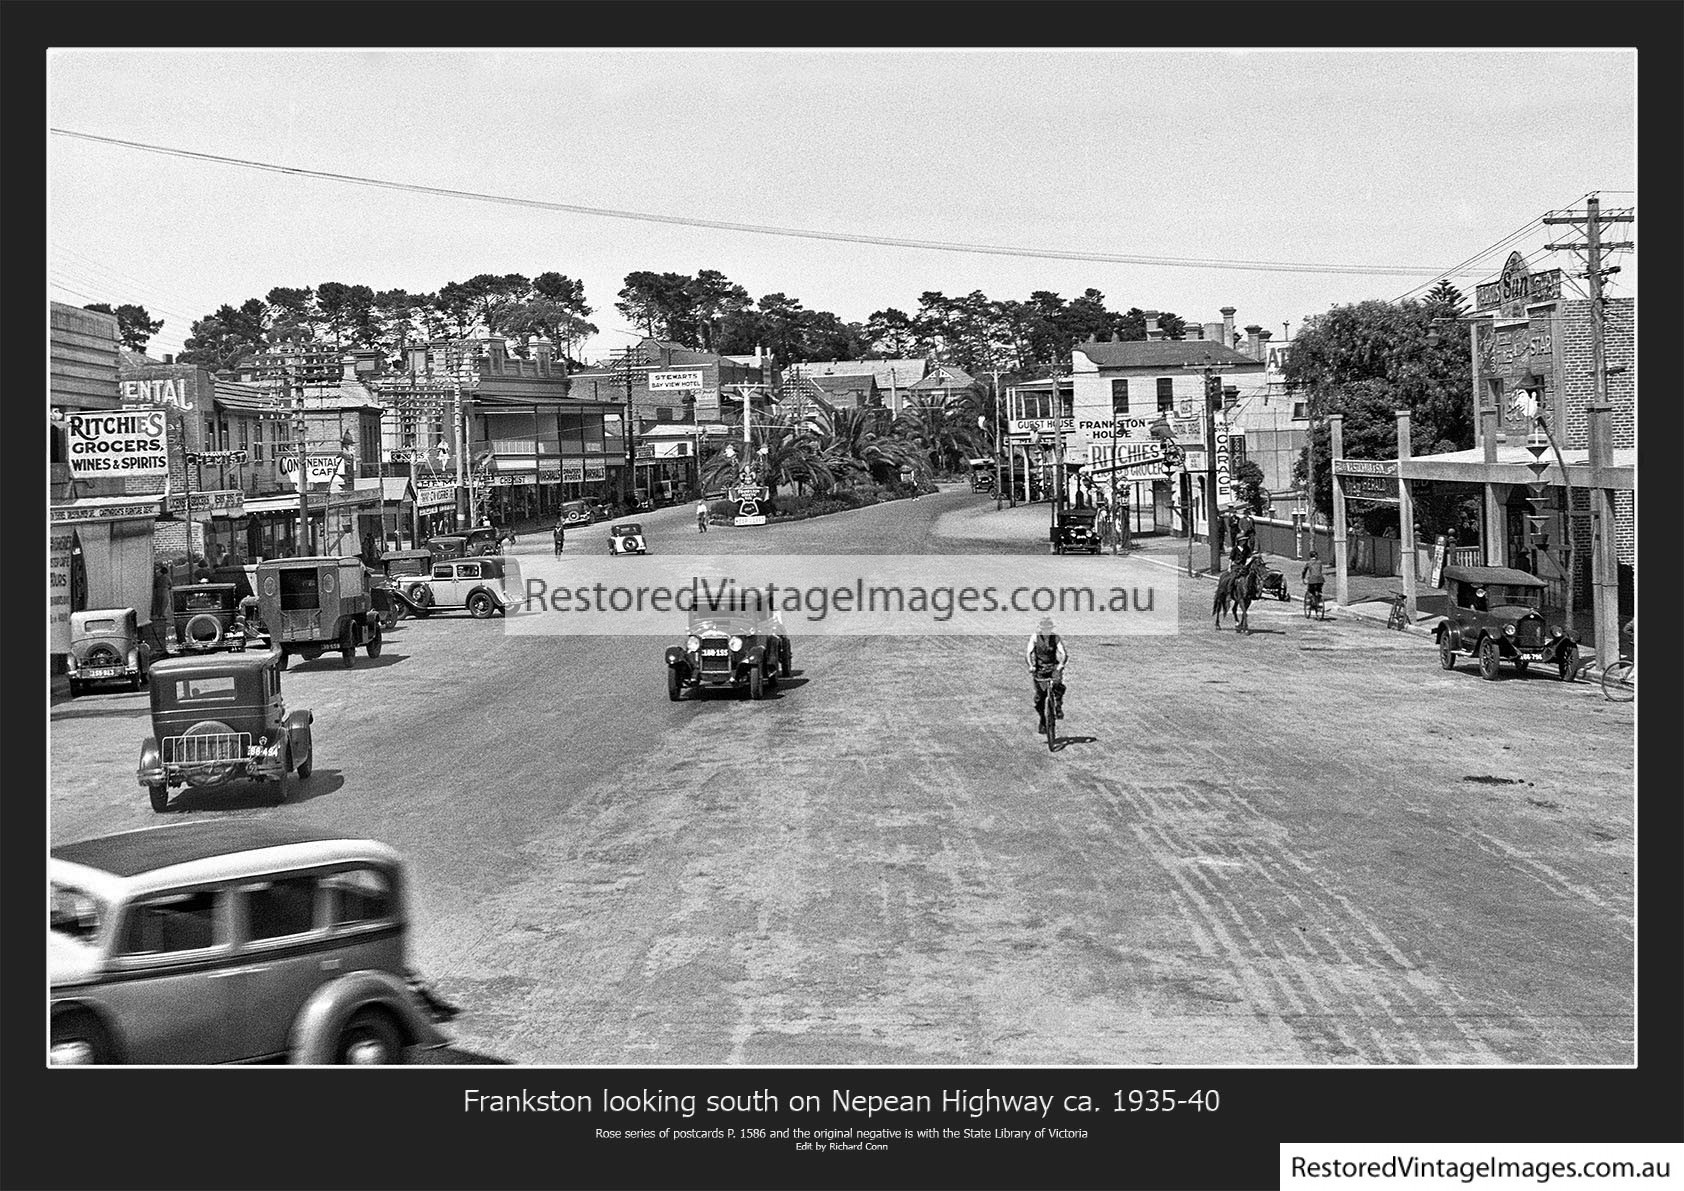 Frankston Looking South Nepean Hwy 1935 – 40